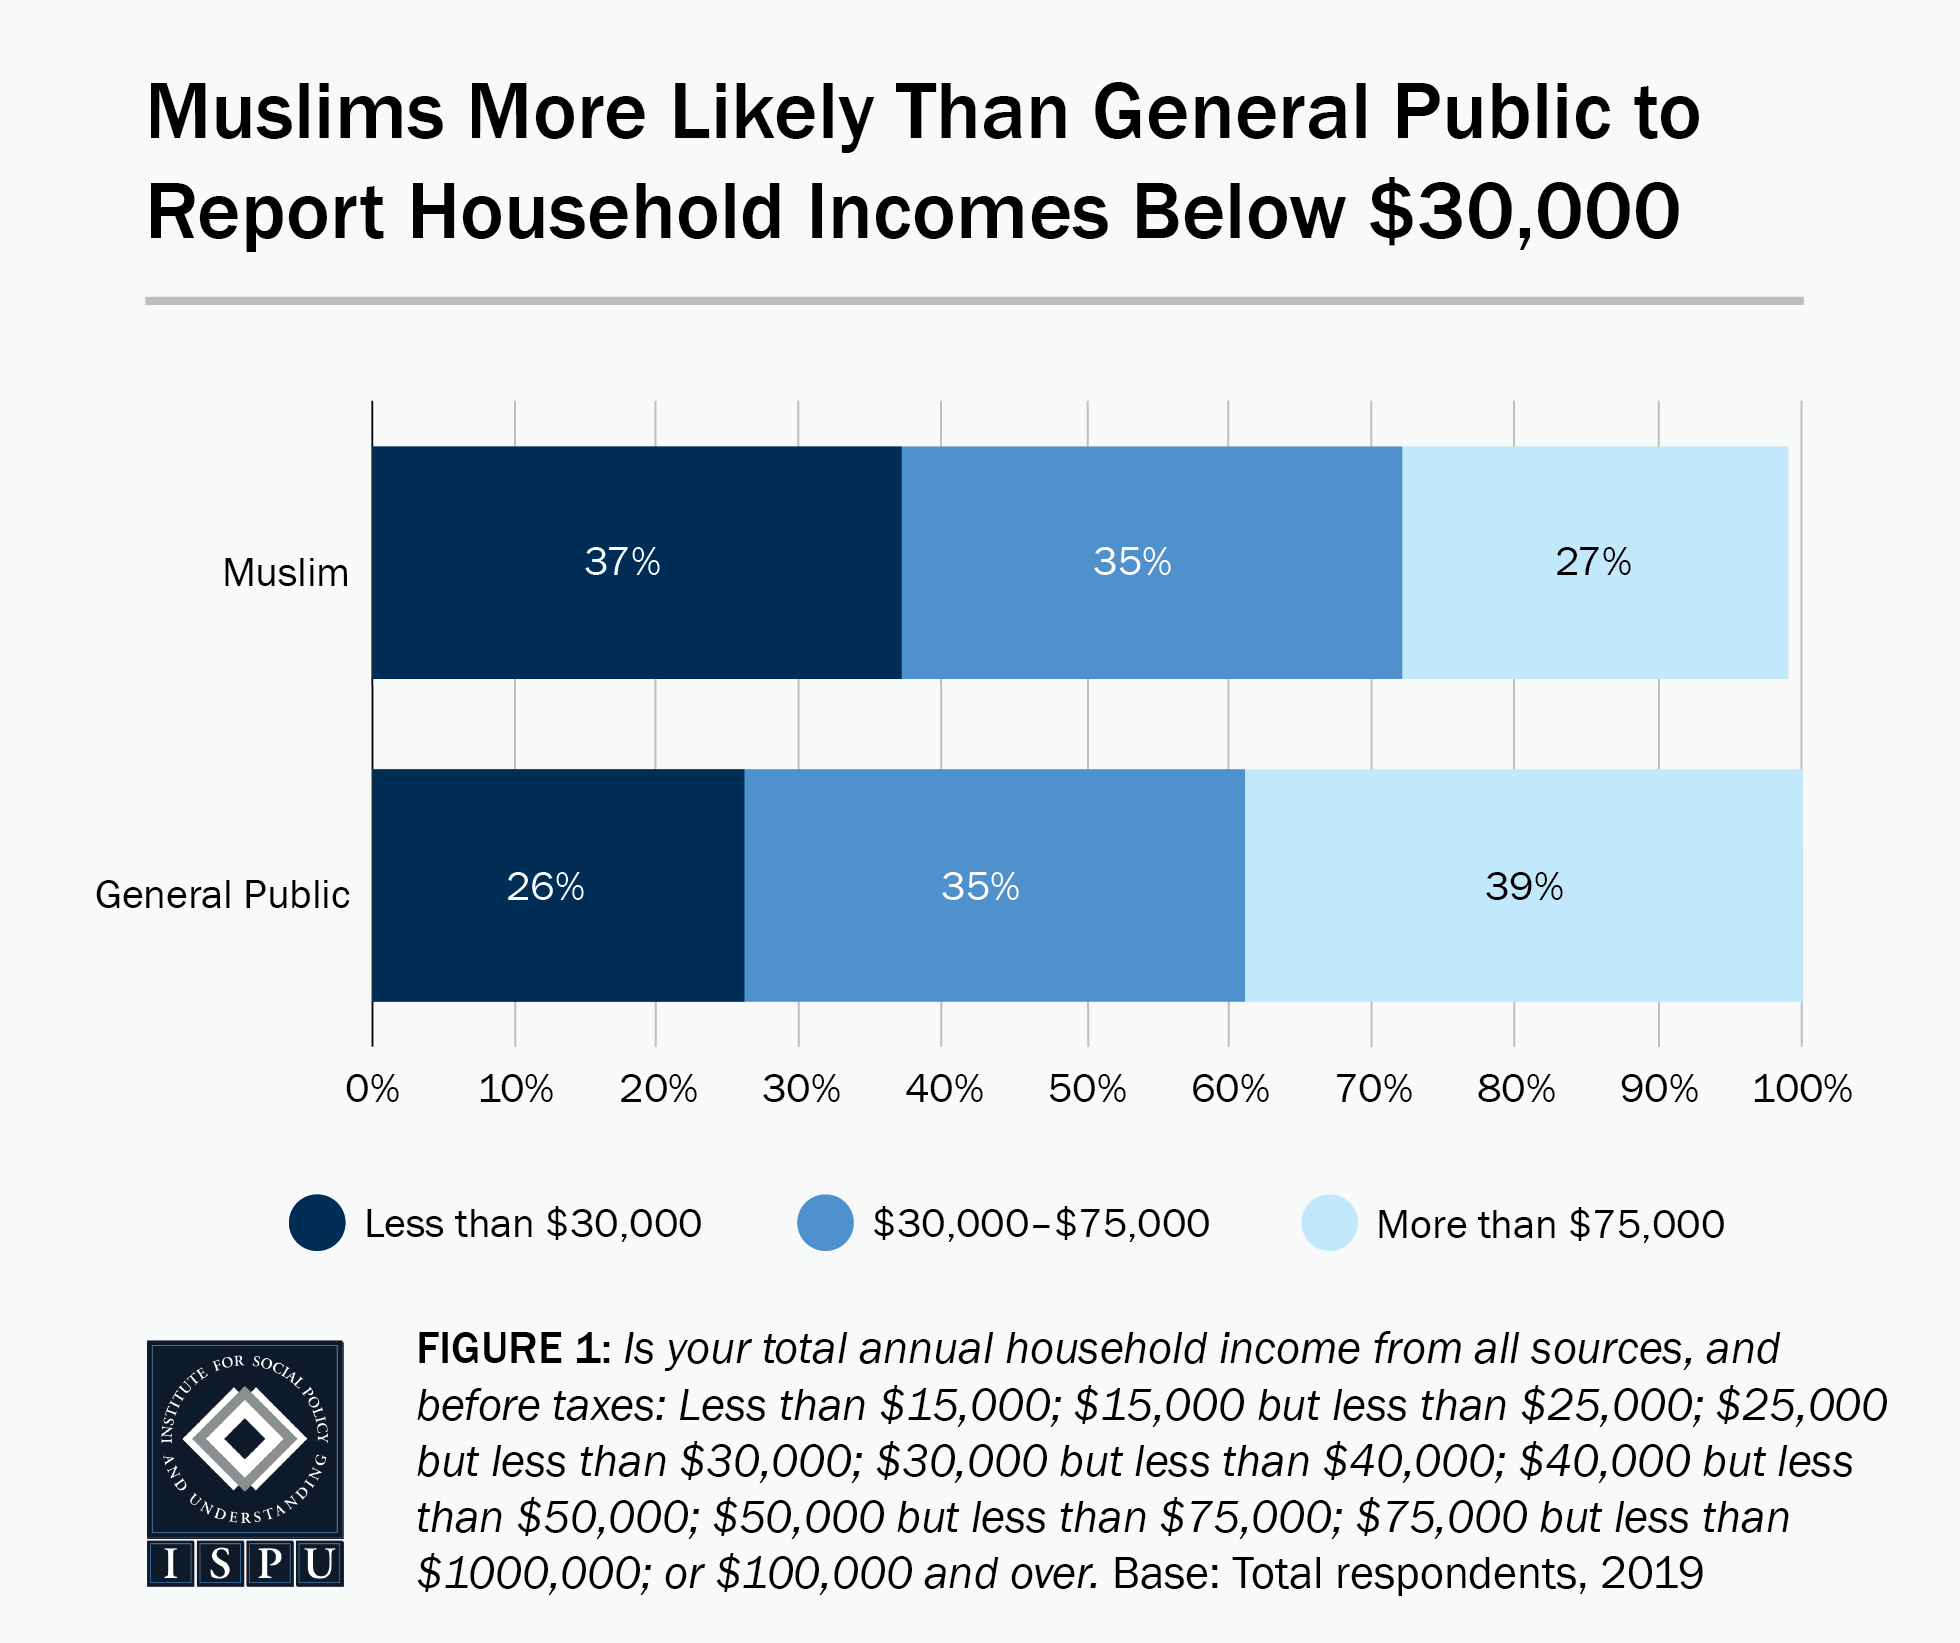 Figure 1: A bar graph showing that Muslims are more likely than the general public to report household incomes below $30,000